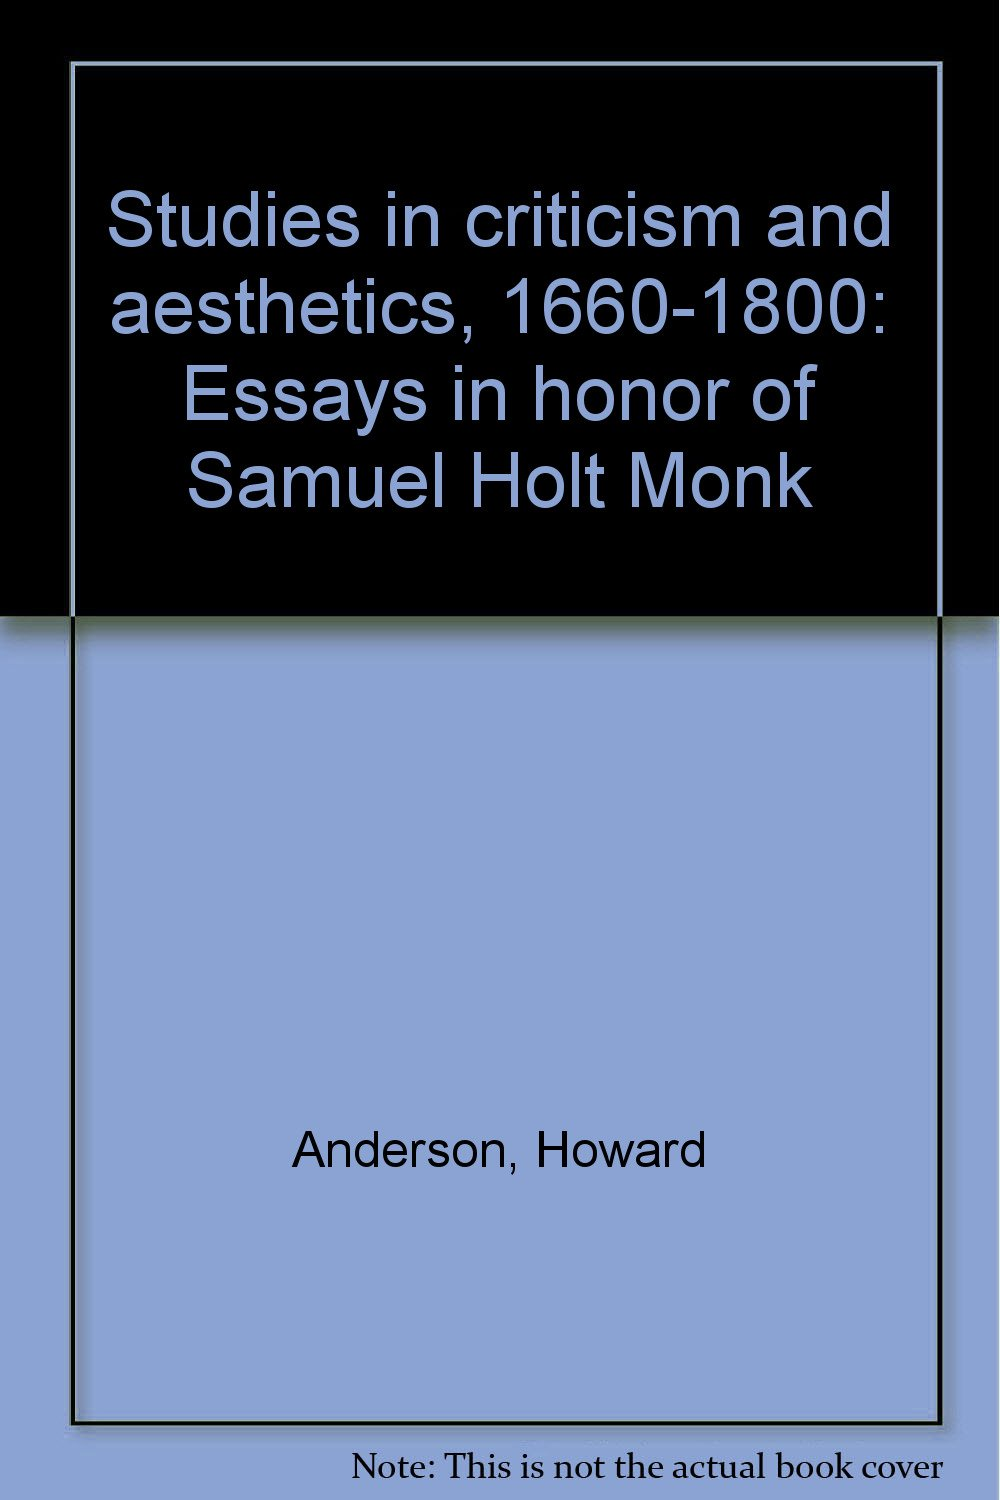 Studies in Criticism and Aesthetics, 1660-1800: Essays in Honor of Samuel Holt Monk